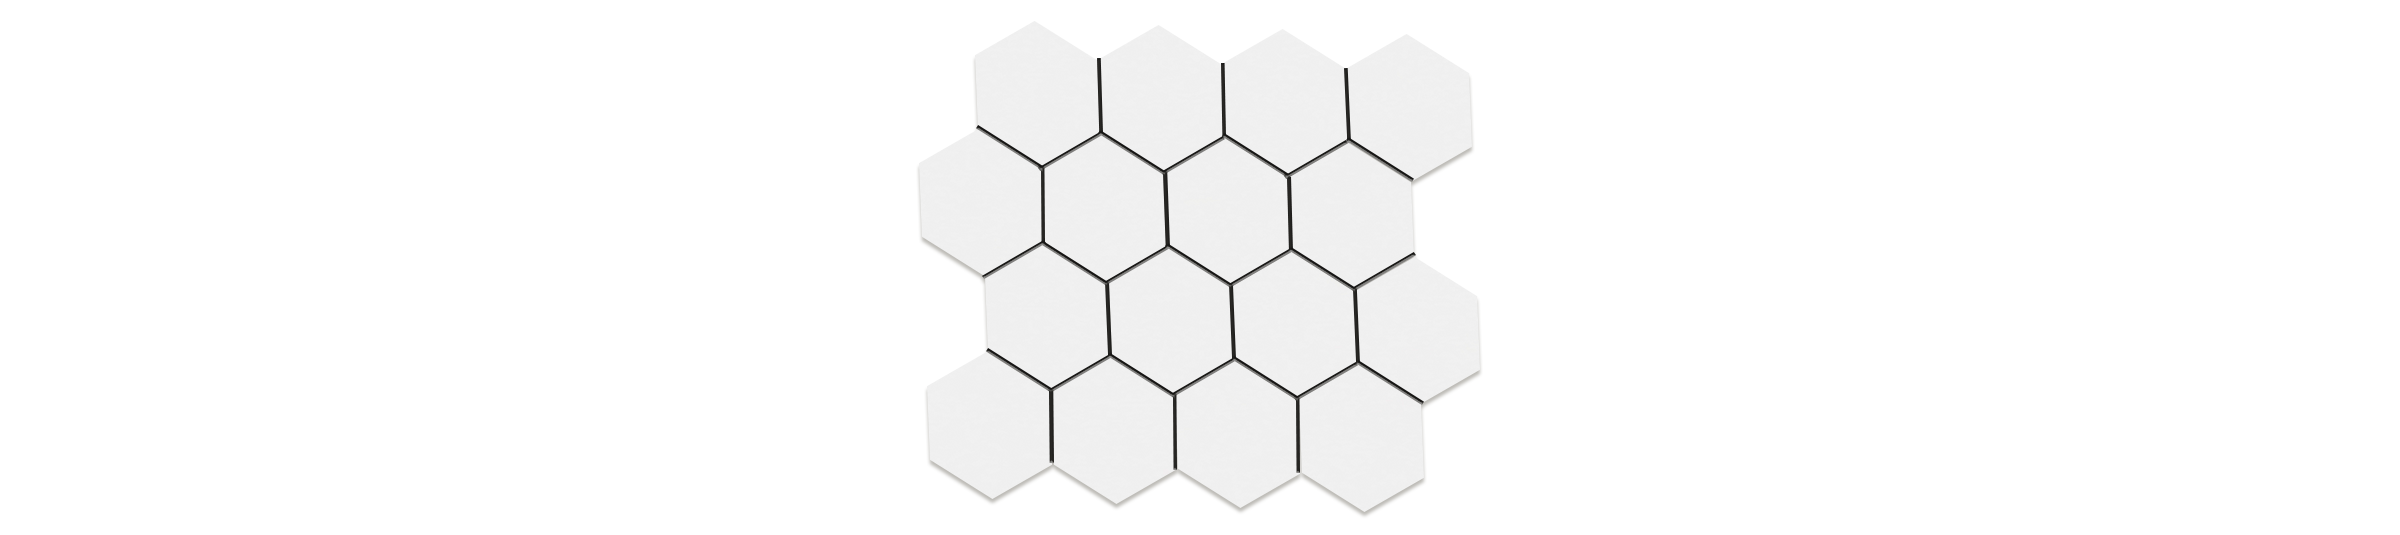 Polar Style White 3x3 Hexagonal Mosaic 10.25 x11.75 Sheet Porcelain